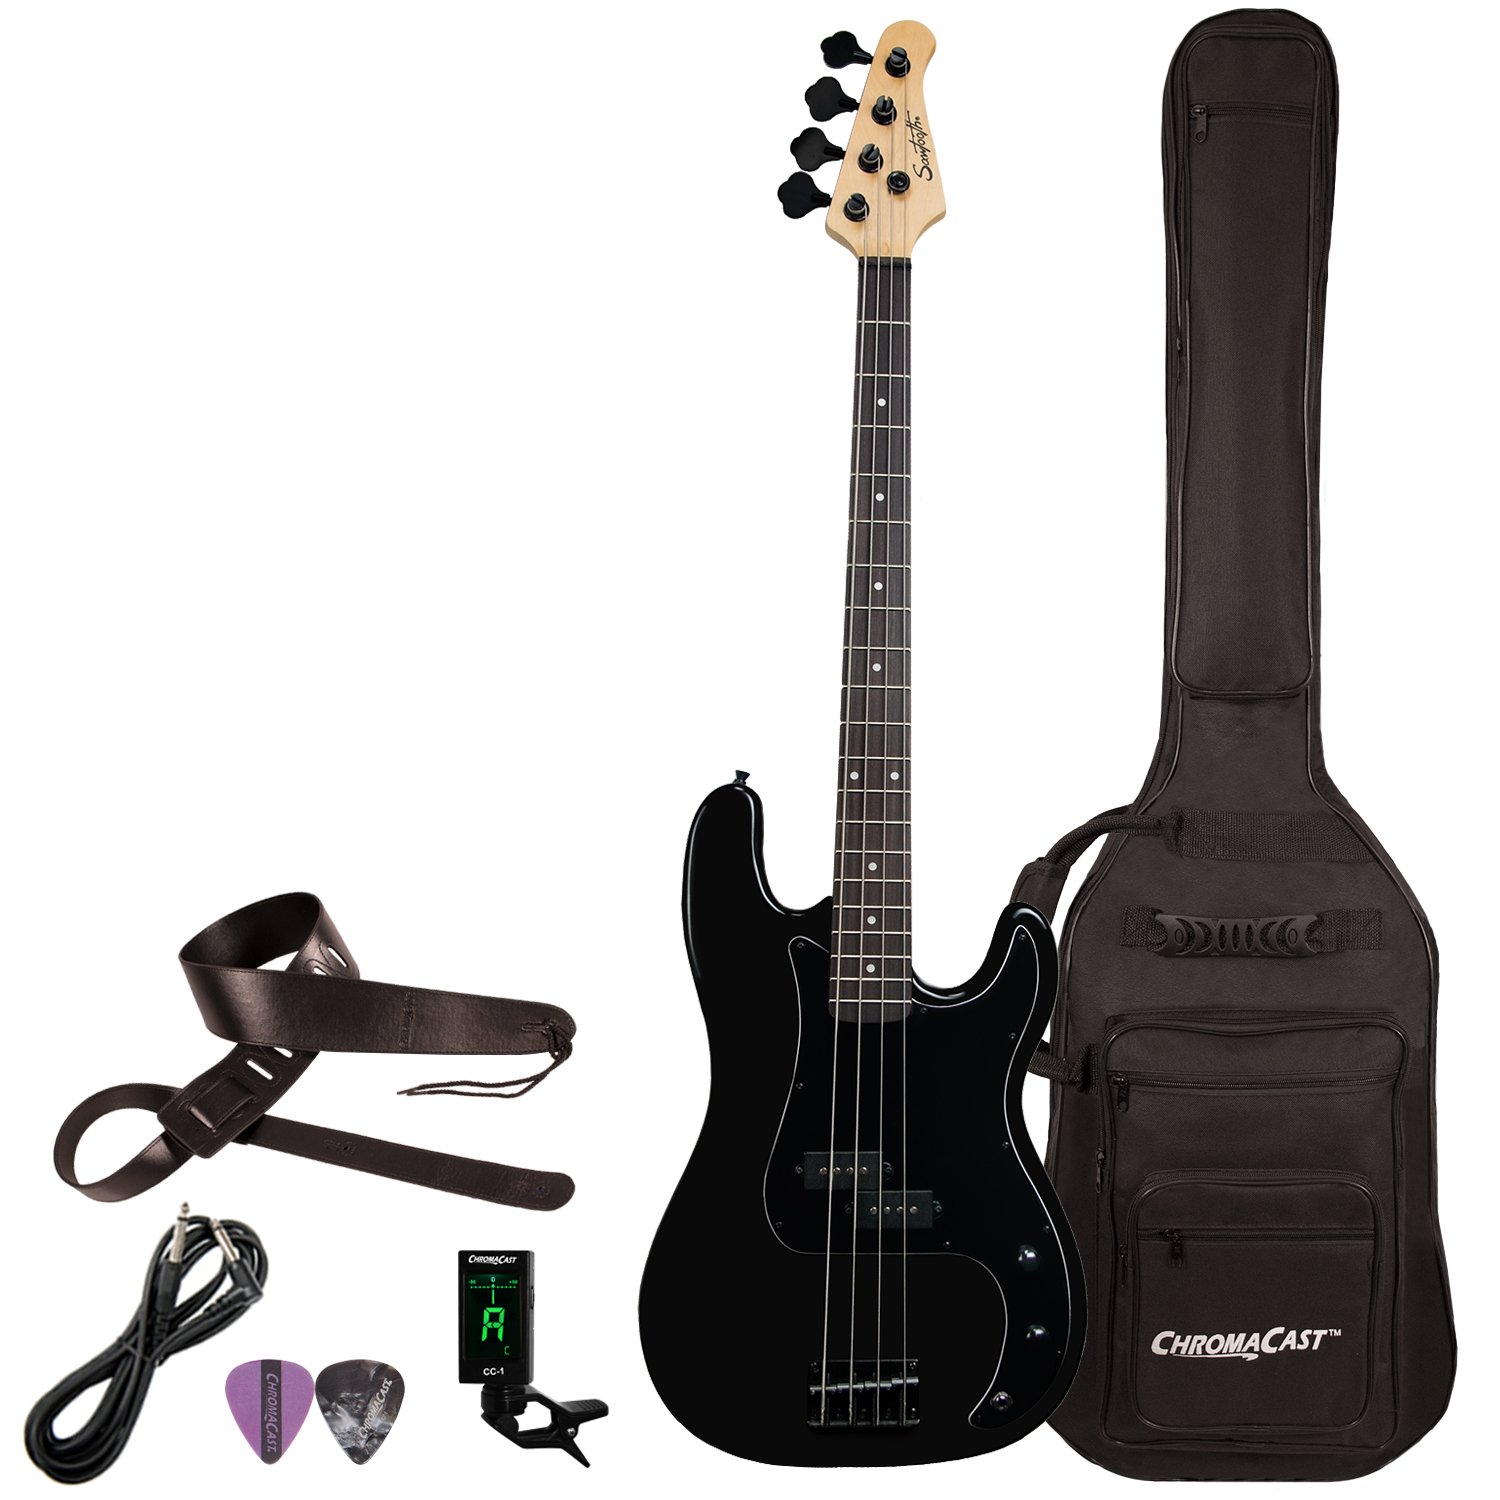 Sawtooth 4 String EP Series Electric Bass Guitar with Gig Bag & Accessories, Satin w/Black Pickguard, Right Handed (ST-PB-STNBKB-KIT-1) by Sawtooth (Image #1)